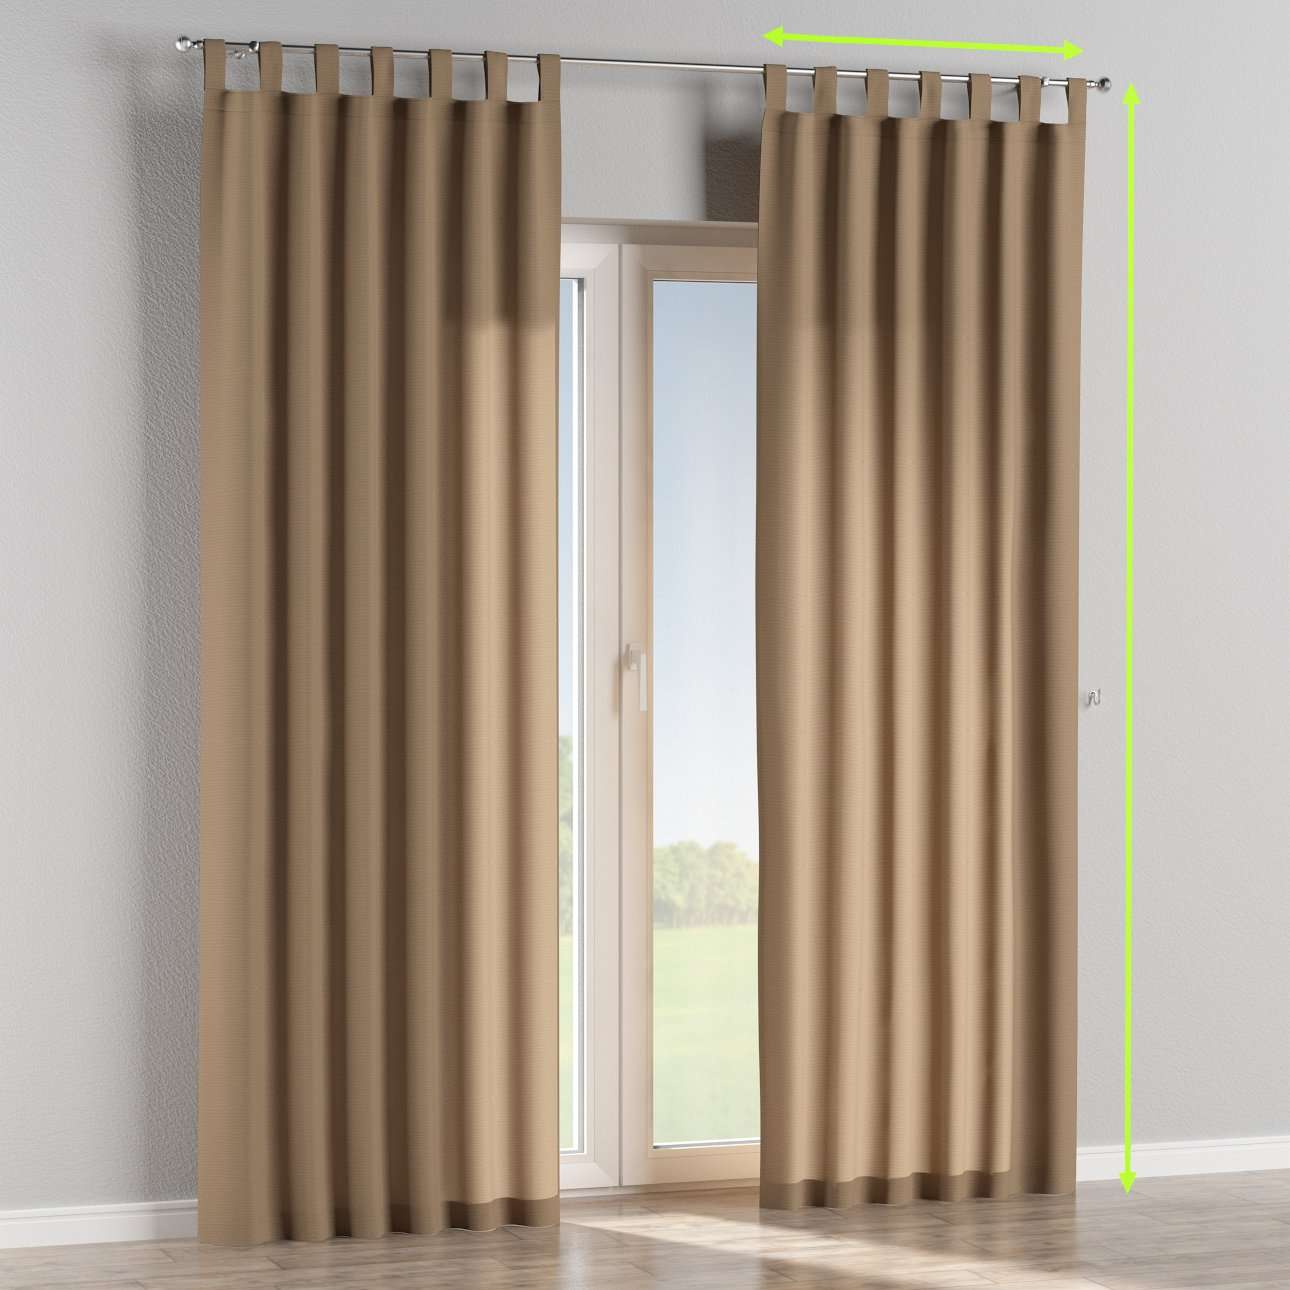 Tab top lined curtains in collection Quadro, fabric: 136-09